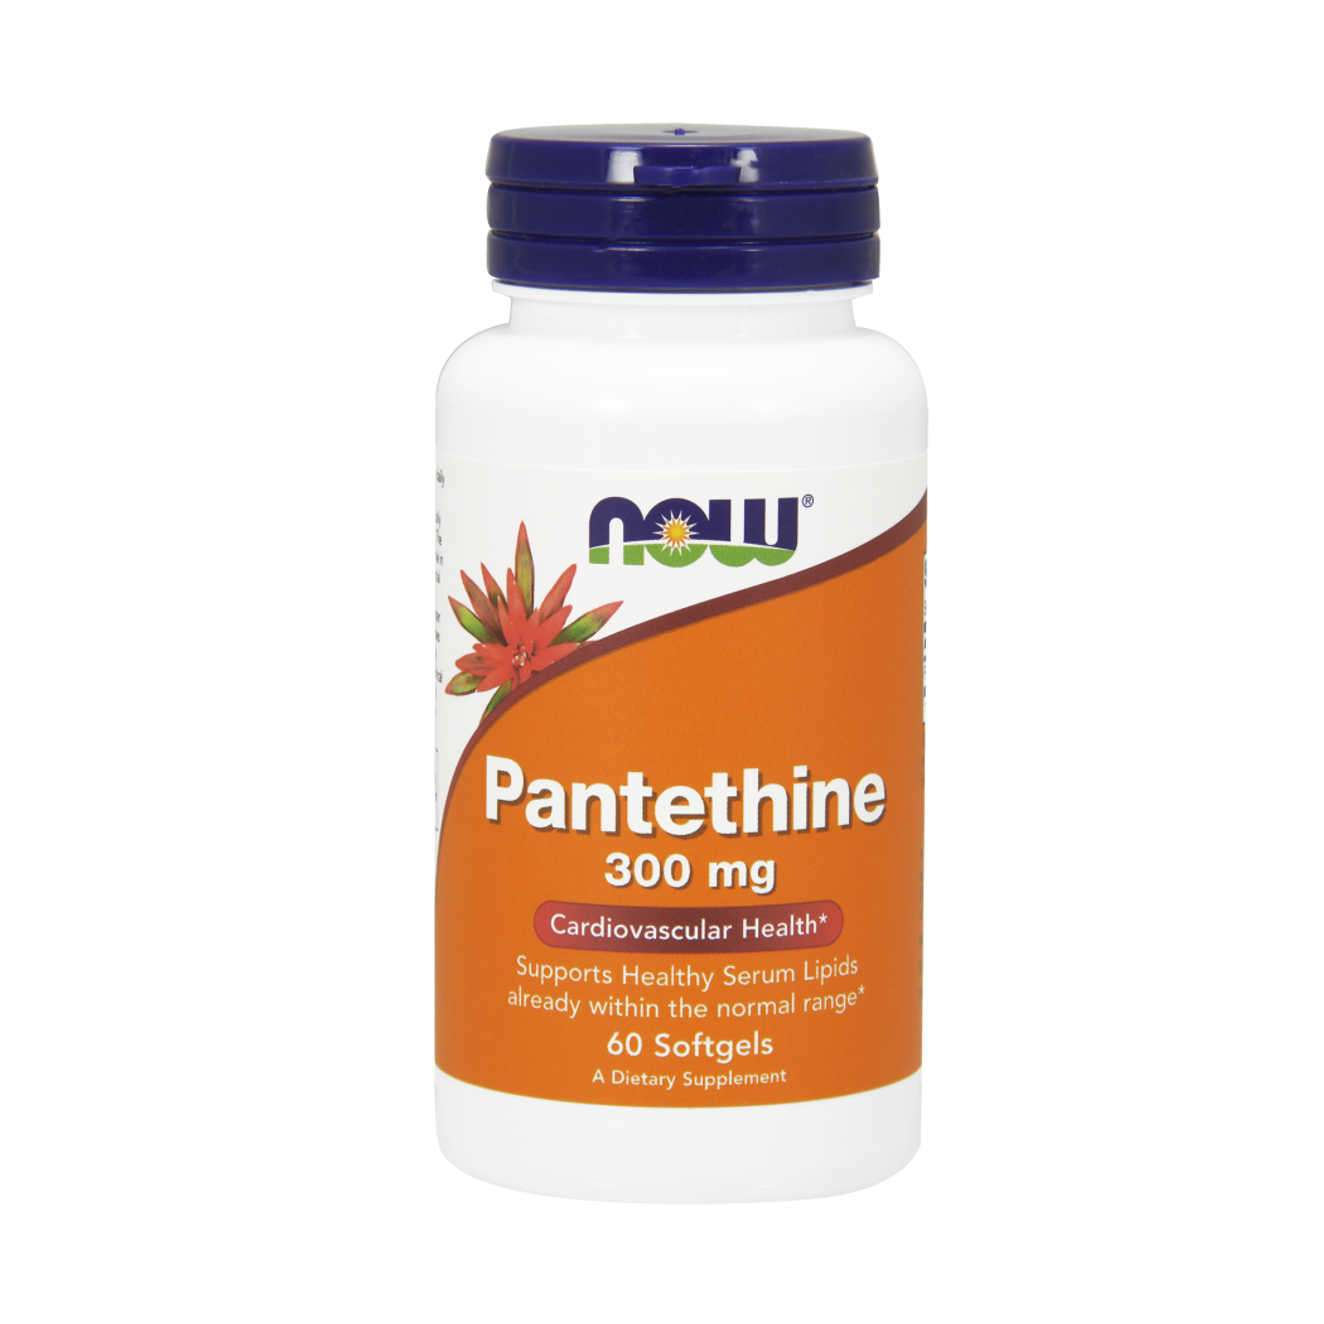 PANTETHINE 300mg - 60 softgels